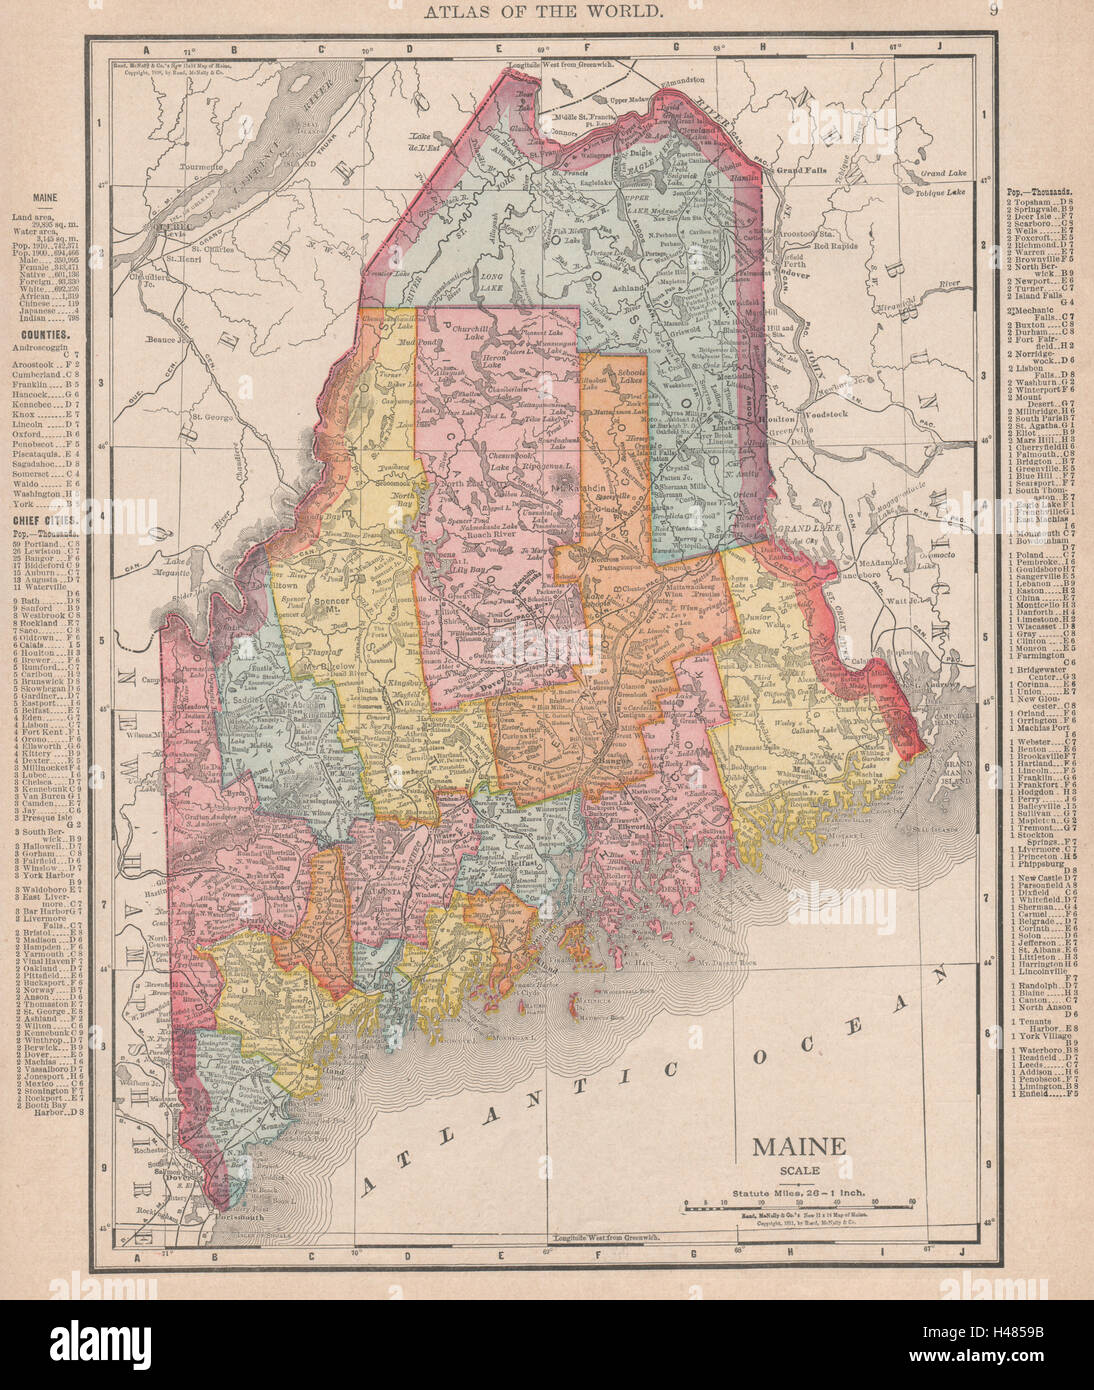 Maine State Map Showing Counties RAND MCNALLY Old Antique - Maine counties map